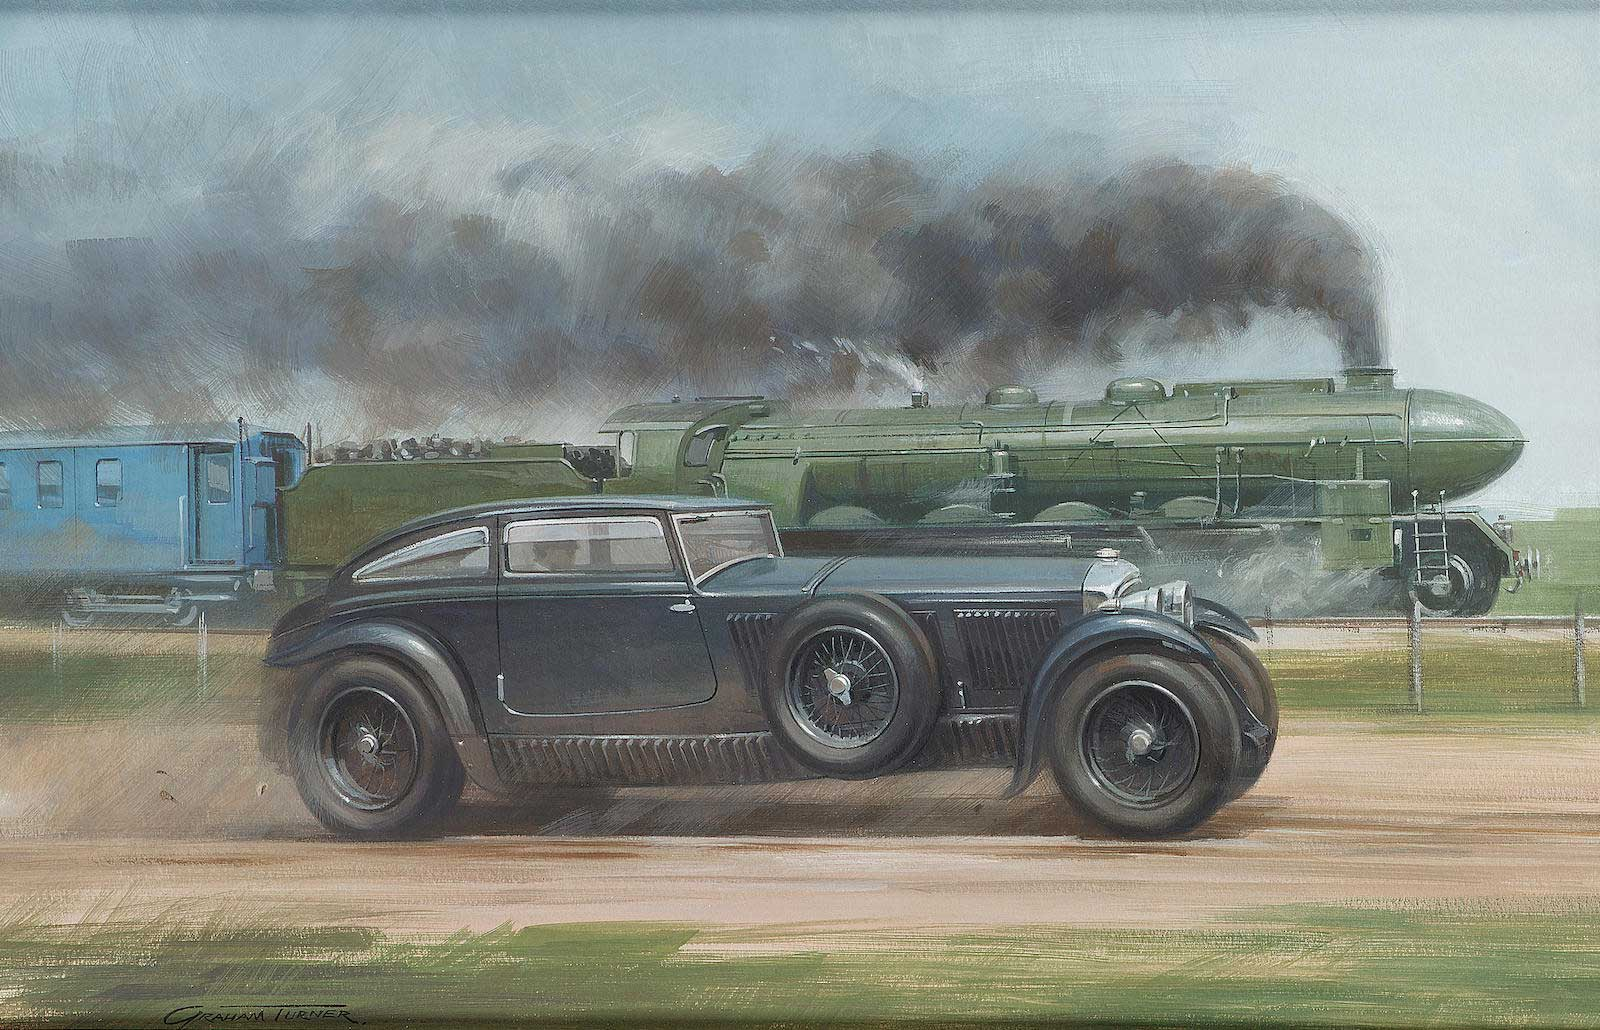 Painting auctioned off by Bonhams in 2004, Graham Turner,'Blue Train Bentley Versus Le Train Bleu,' gouache on board, depicting Woolf Barnato in his 6.5 Litre Straight Six Bentley racing against 'Le Train Bleu,' 34 x 53cm (13.5 x 21ins), mounted, framed and glazed (Image: bonhams.com)